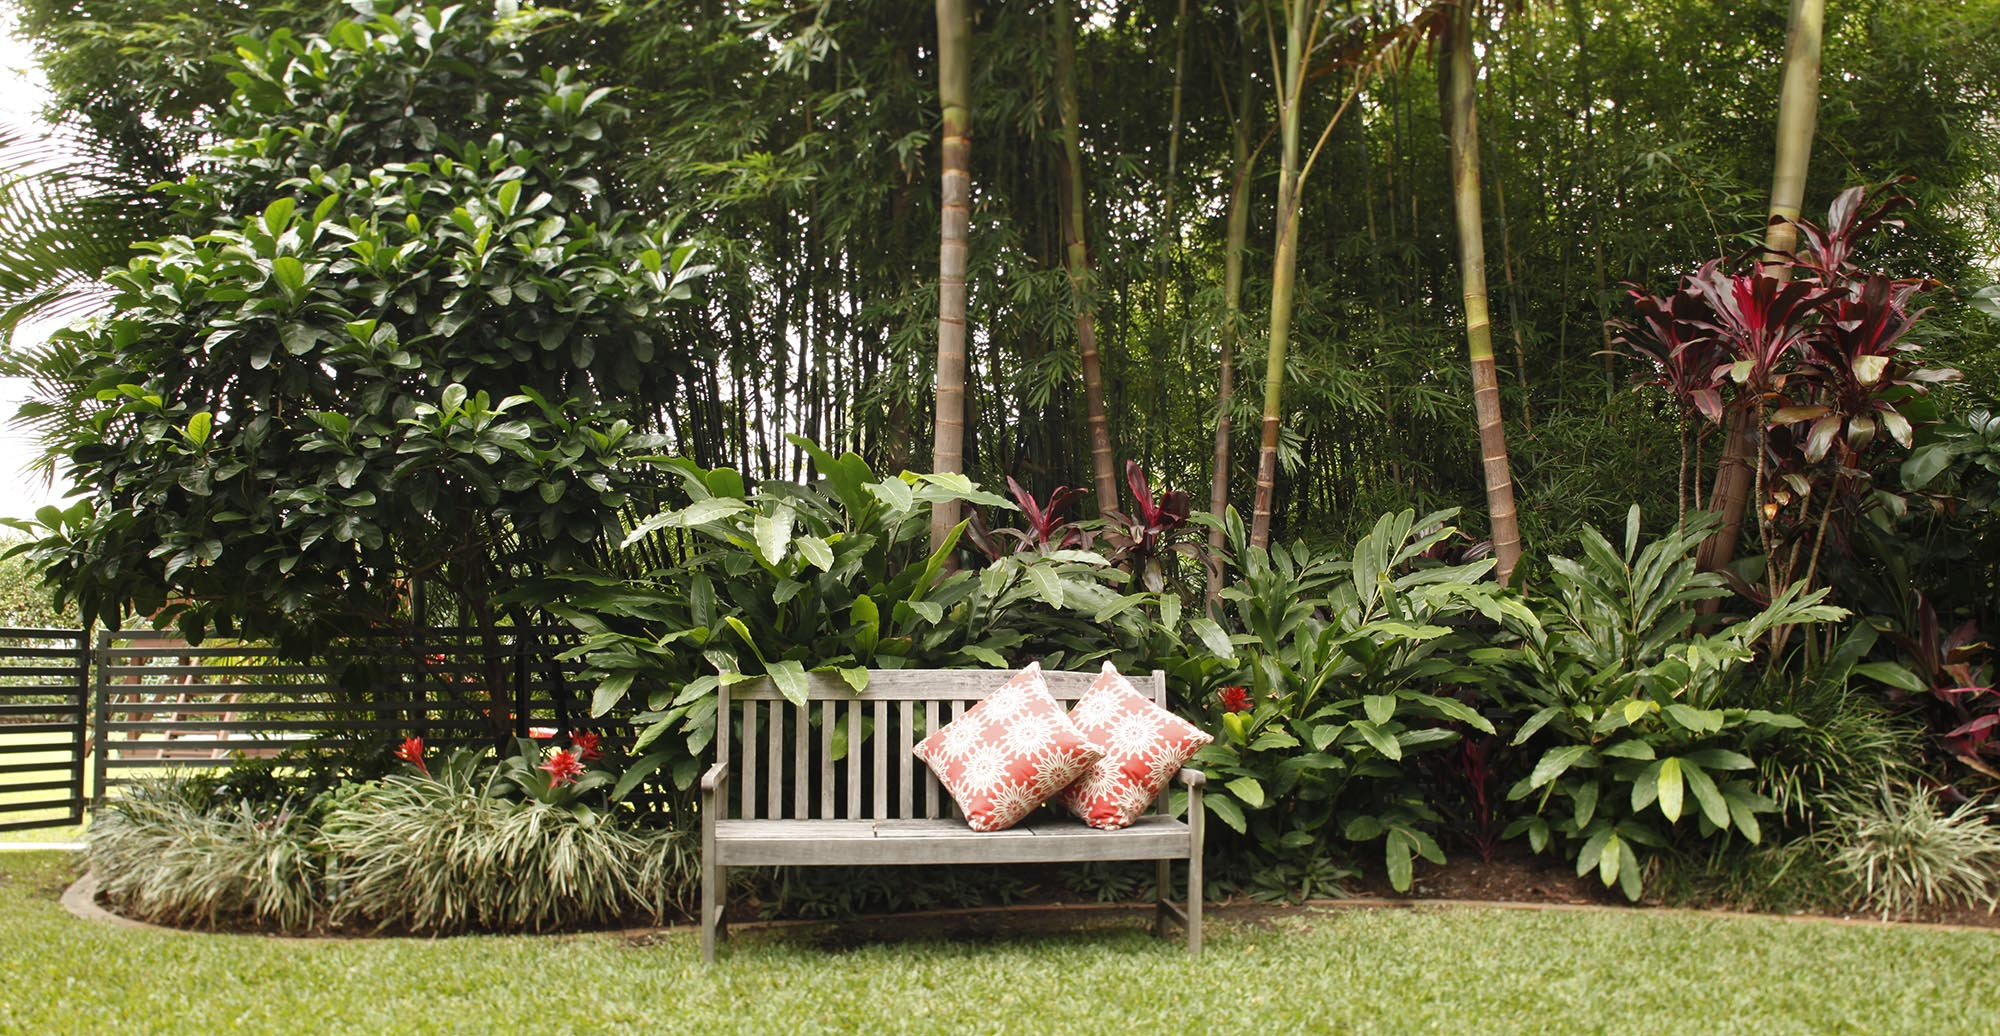 coorparoo tropical garden bench